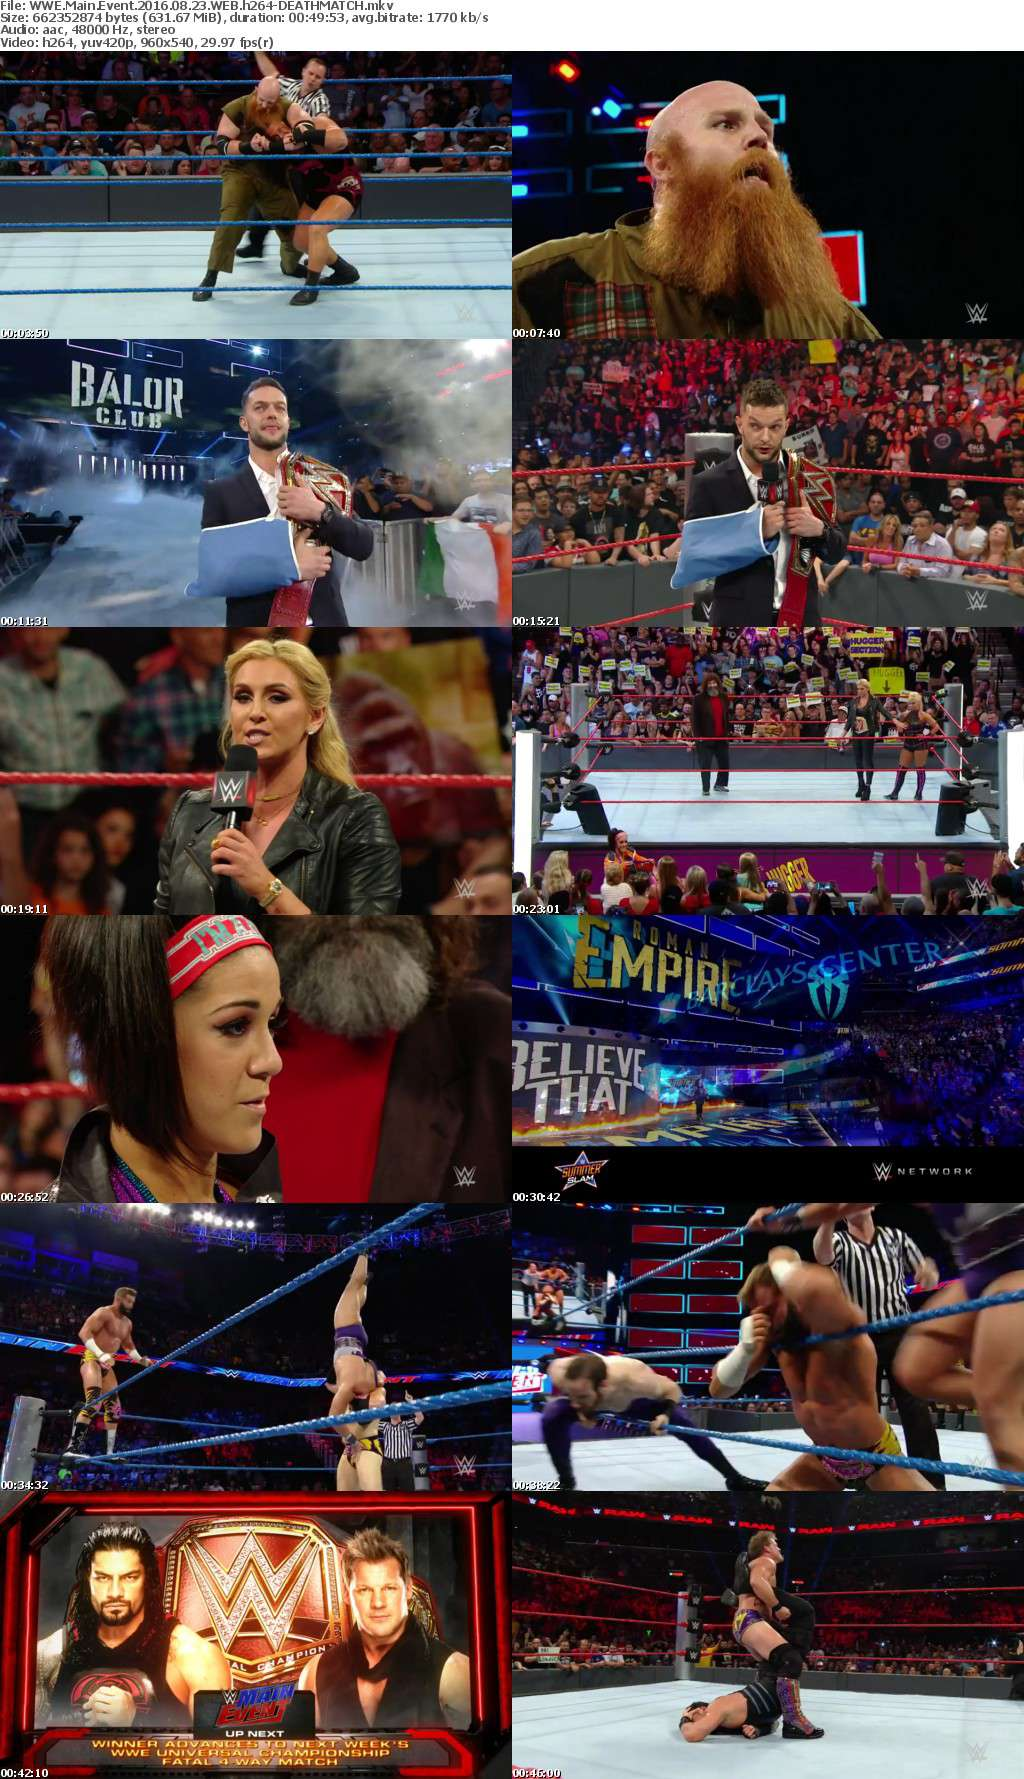 WWE Main Event 2016 08 23 WEB h264-DEATHMATCH